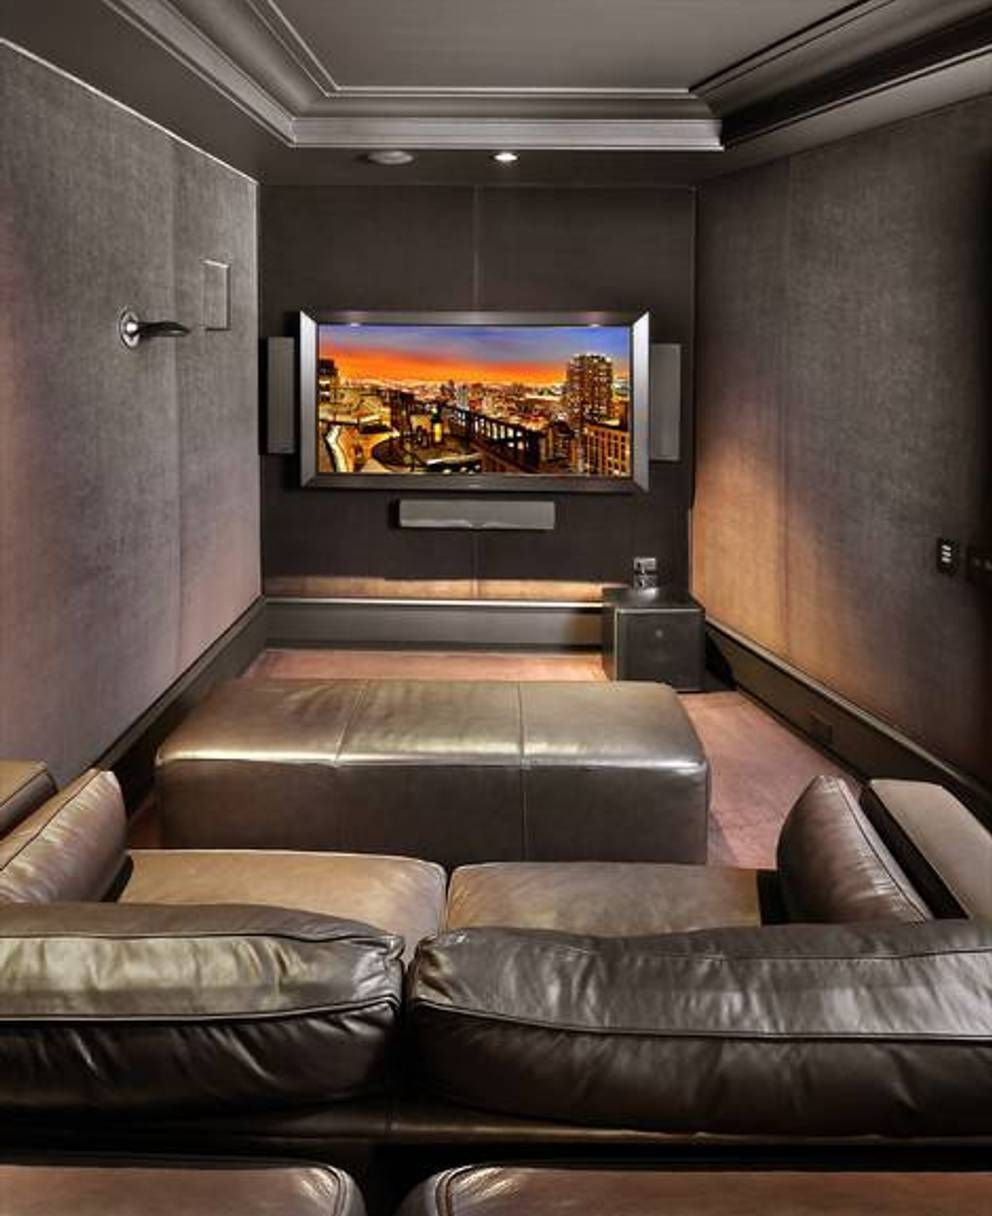 Home Design And Decor Small Home Theater Room Ideas Modern Small Home Theater Room With Leath Small Home Theaters Home Theater Rooms Home Theater Furniture